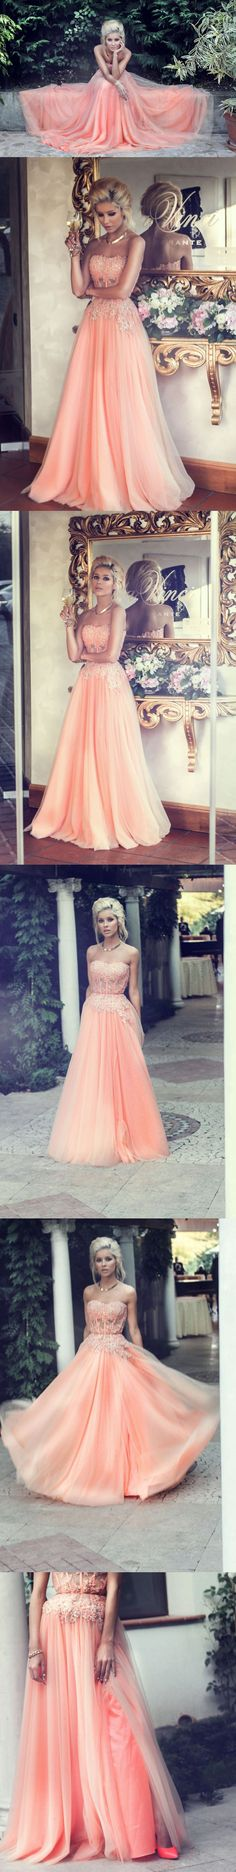 Hot sales 2015 prom dresses, focus in your prom, bought from okbridalshop.com